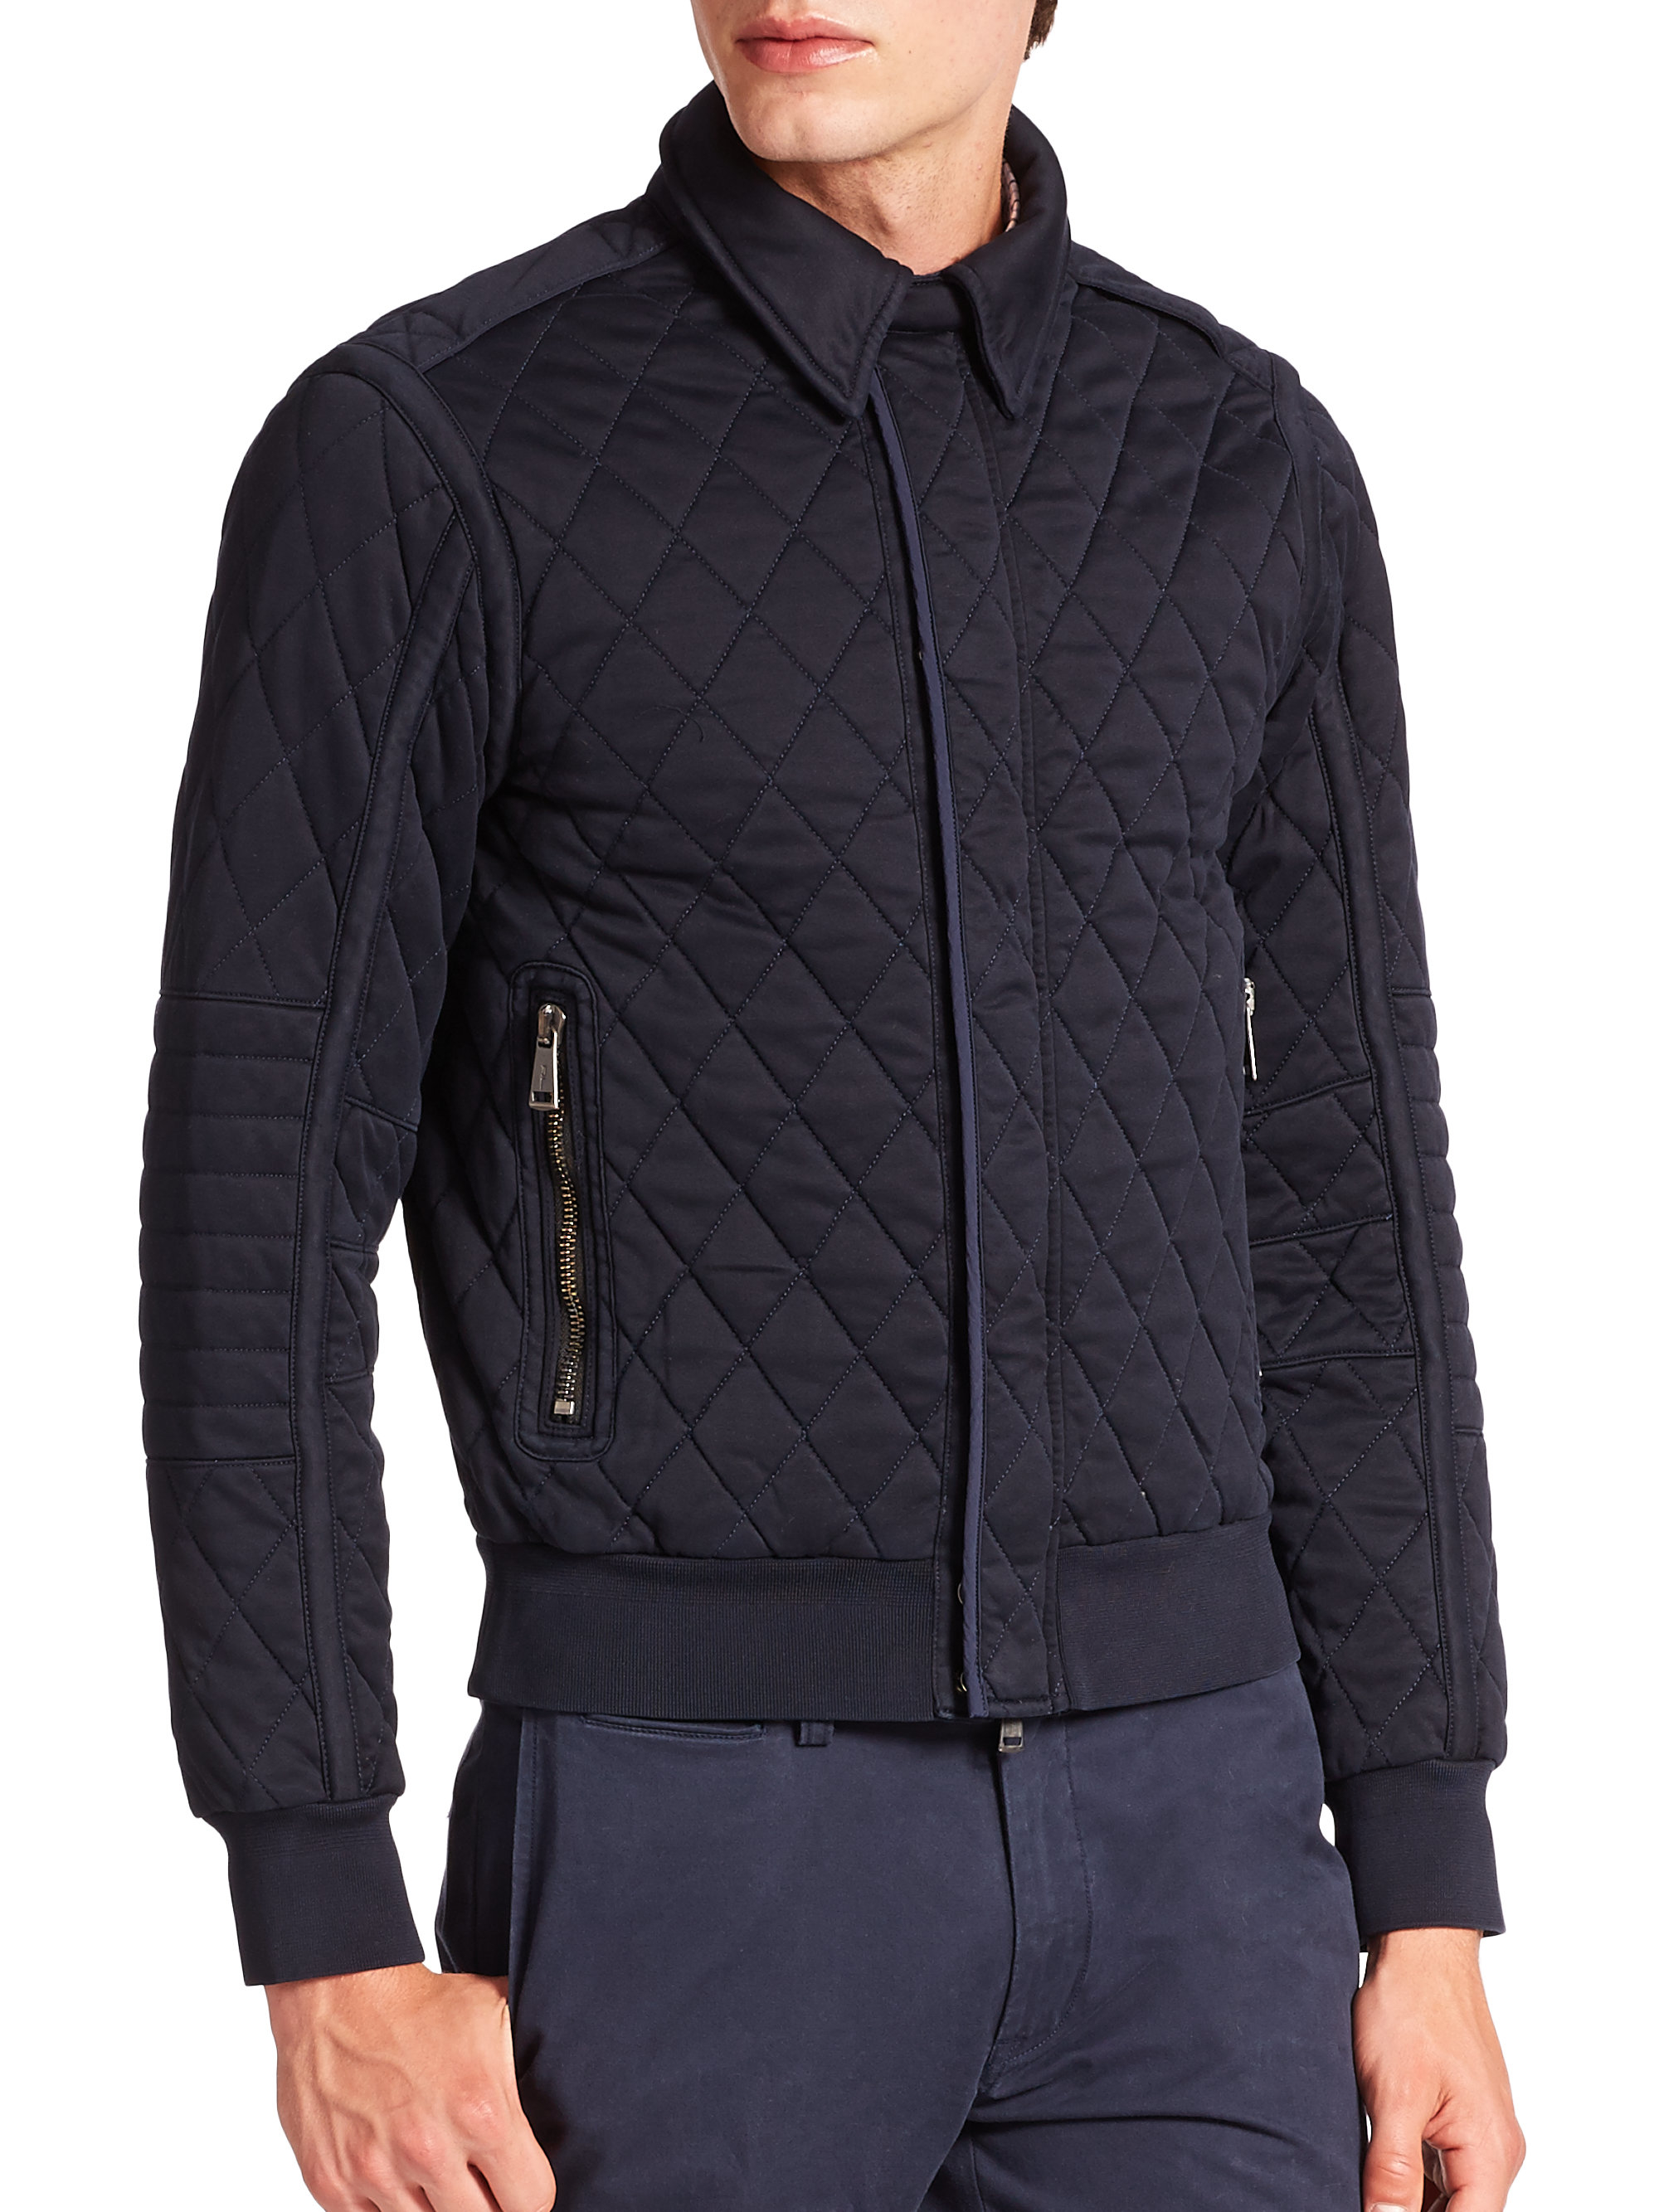 polo ralph lauren quilted bomber jacket in blue for men lyst. Black Bedroom Furniture Sets. Home Design Ideas